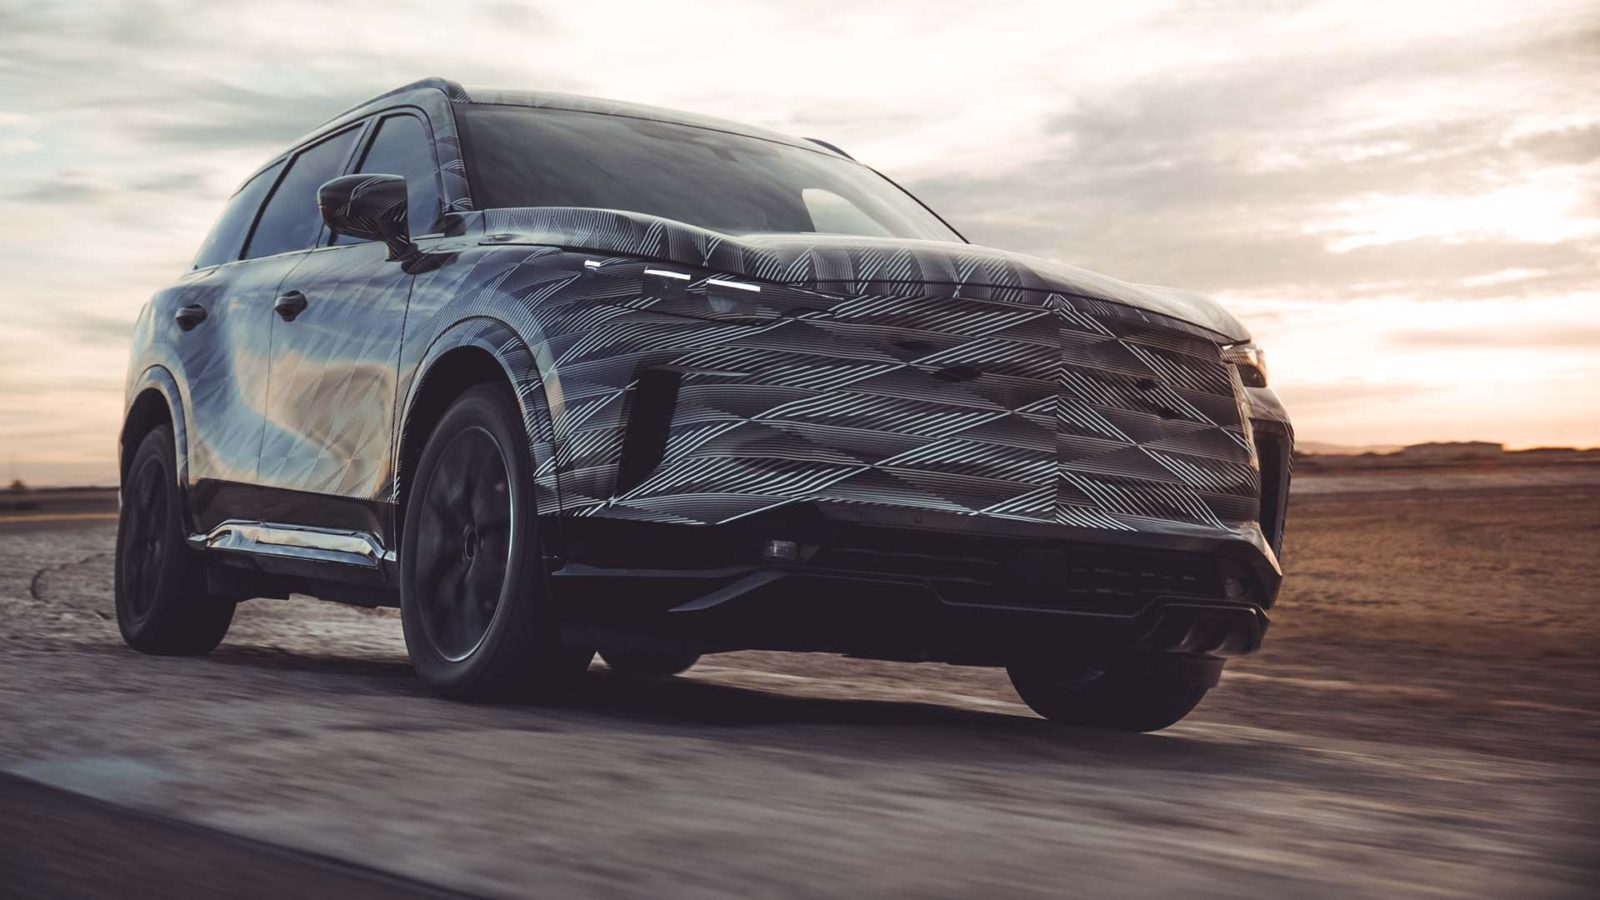 2022-infiniti-qx60-arrives-soon-with-295-hp-v-6,-9-speed-automatic